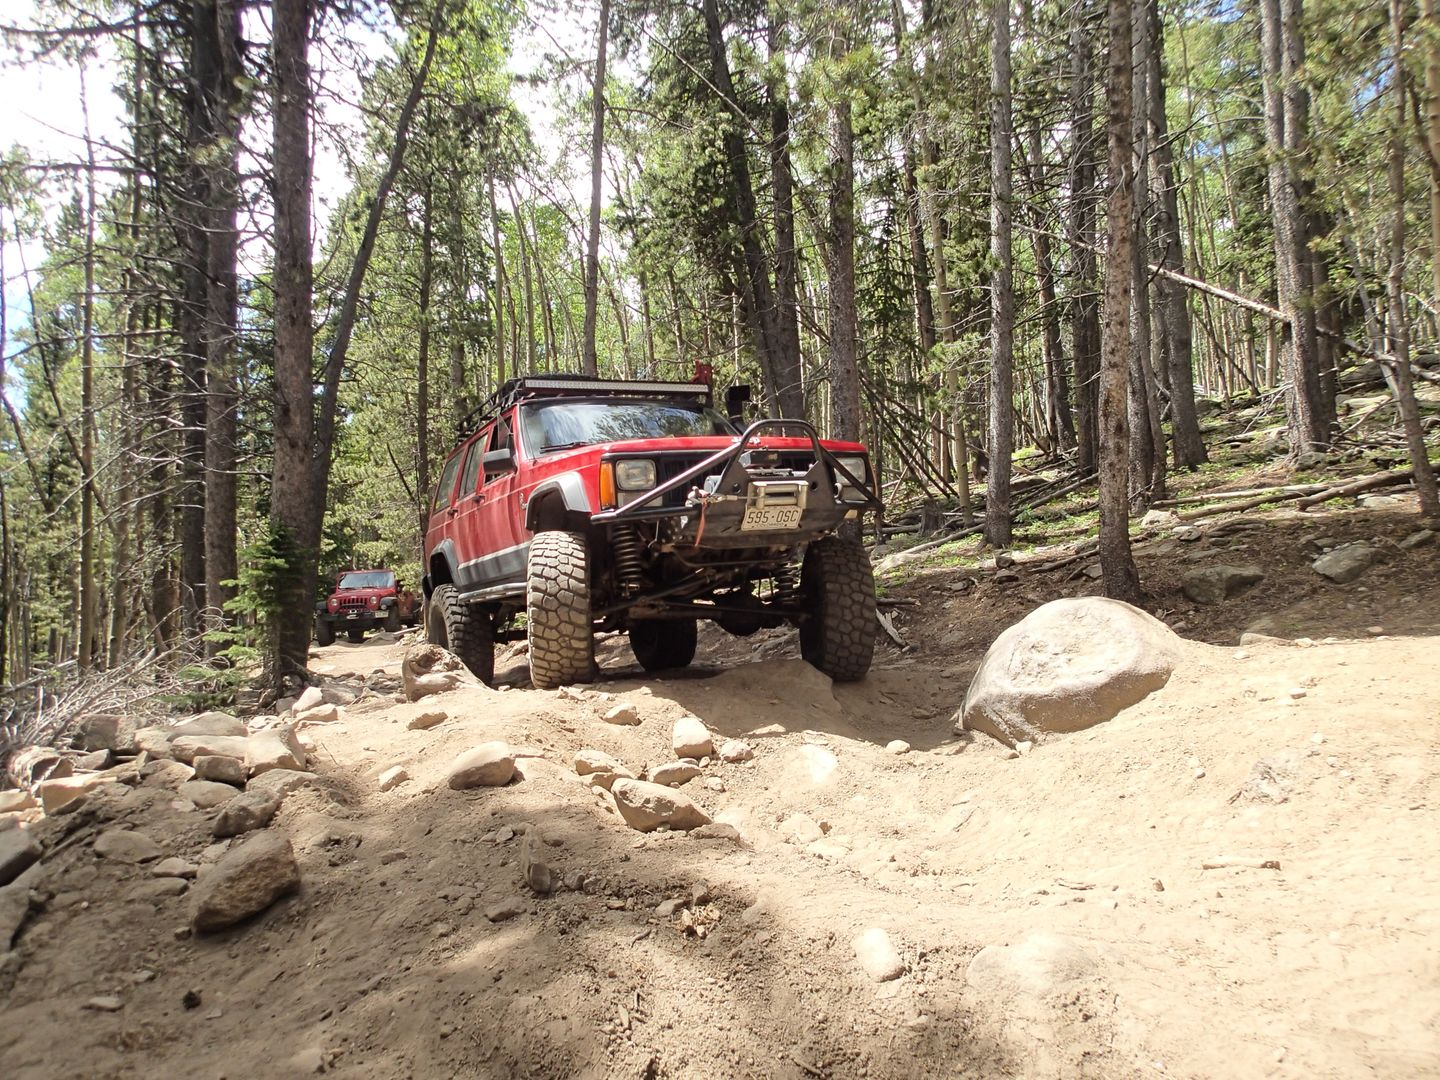 Red Elephant Hill - Waypoint 18: Obstacle